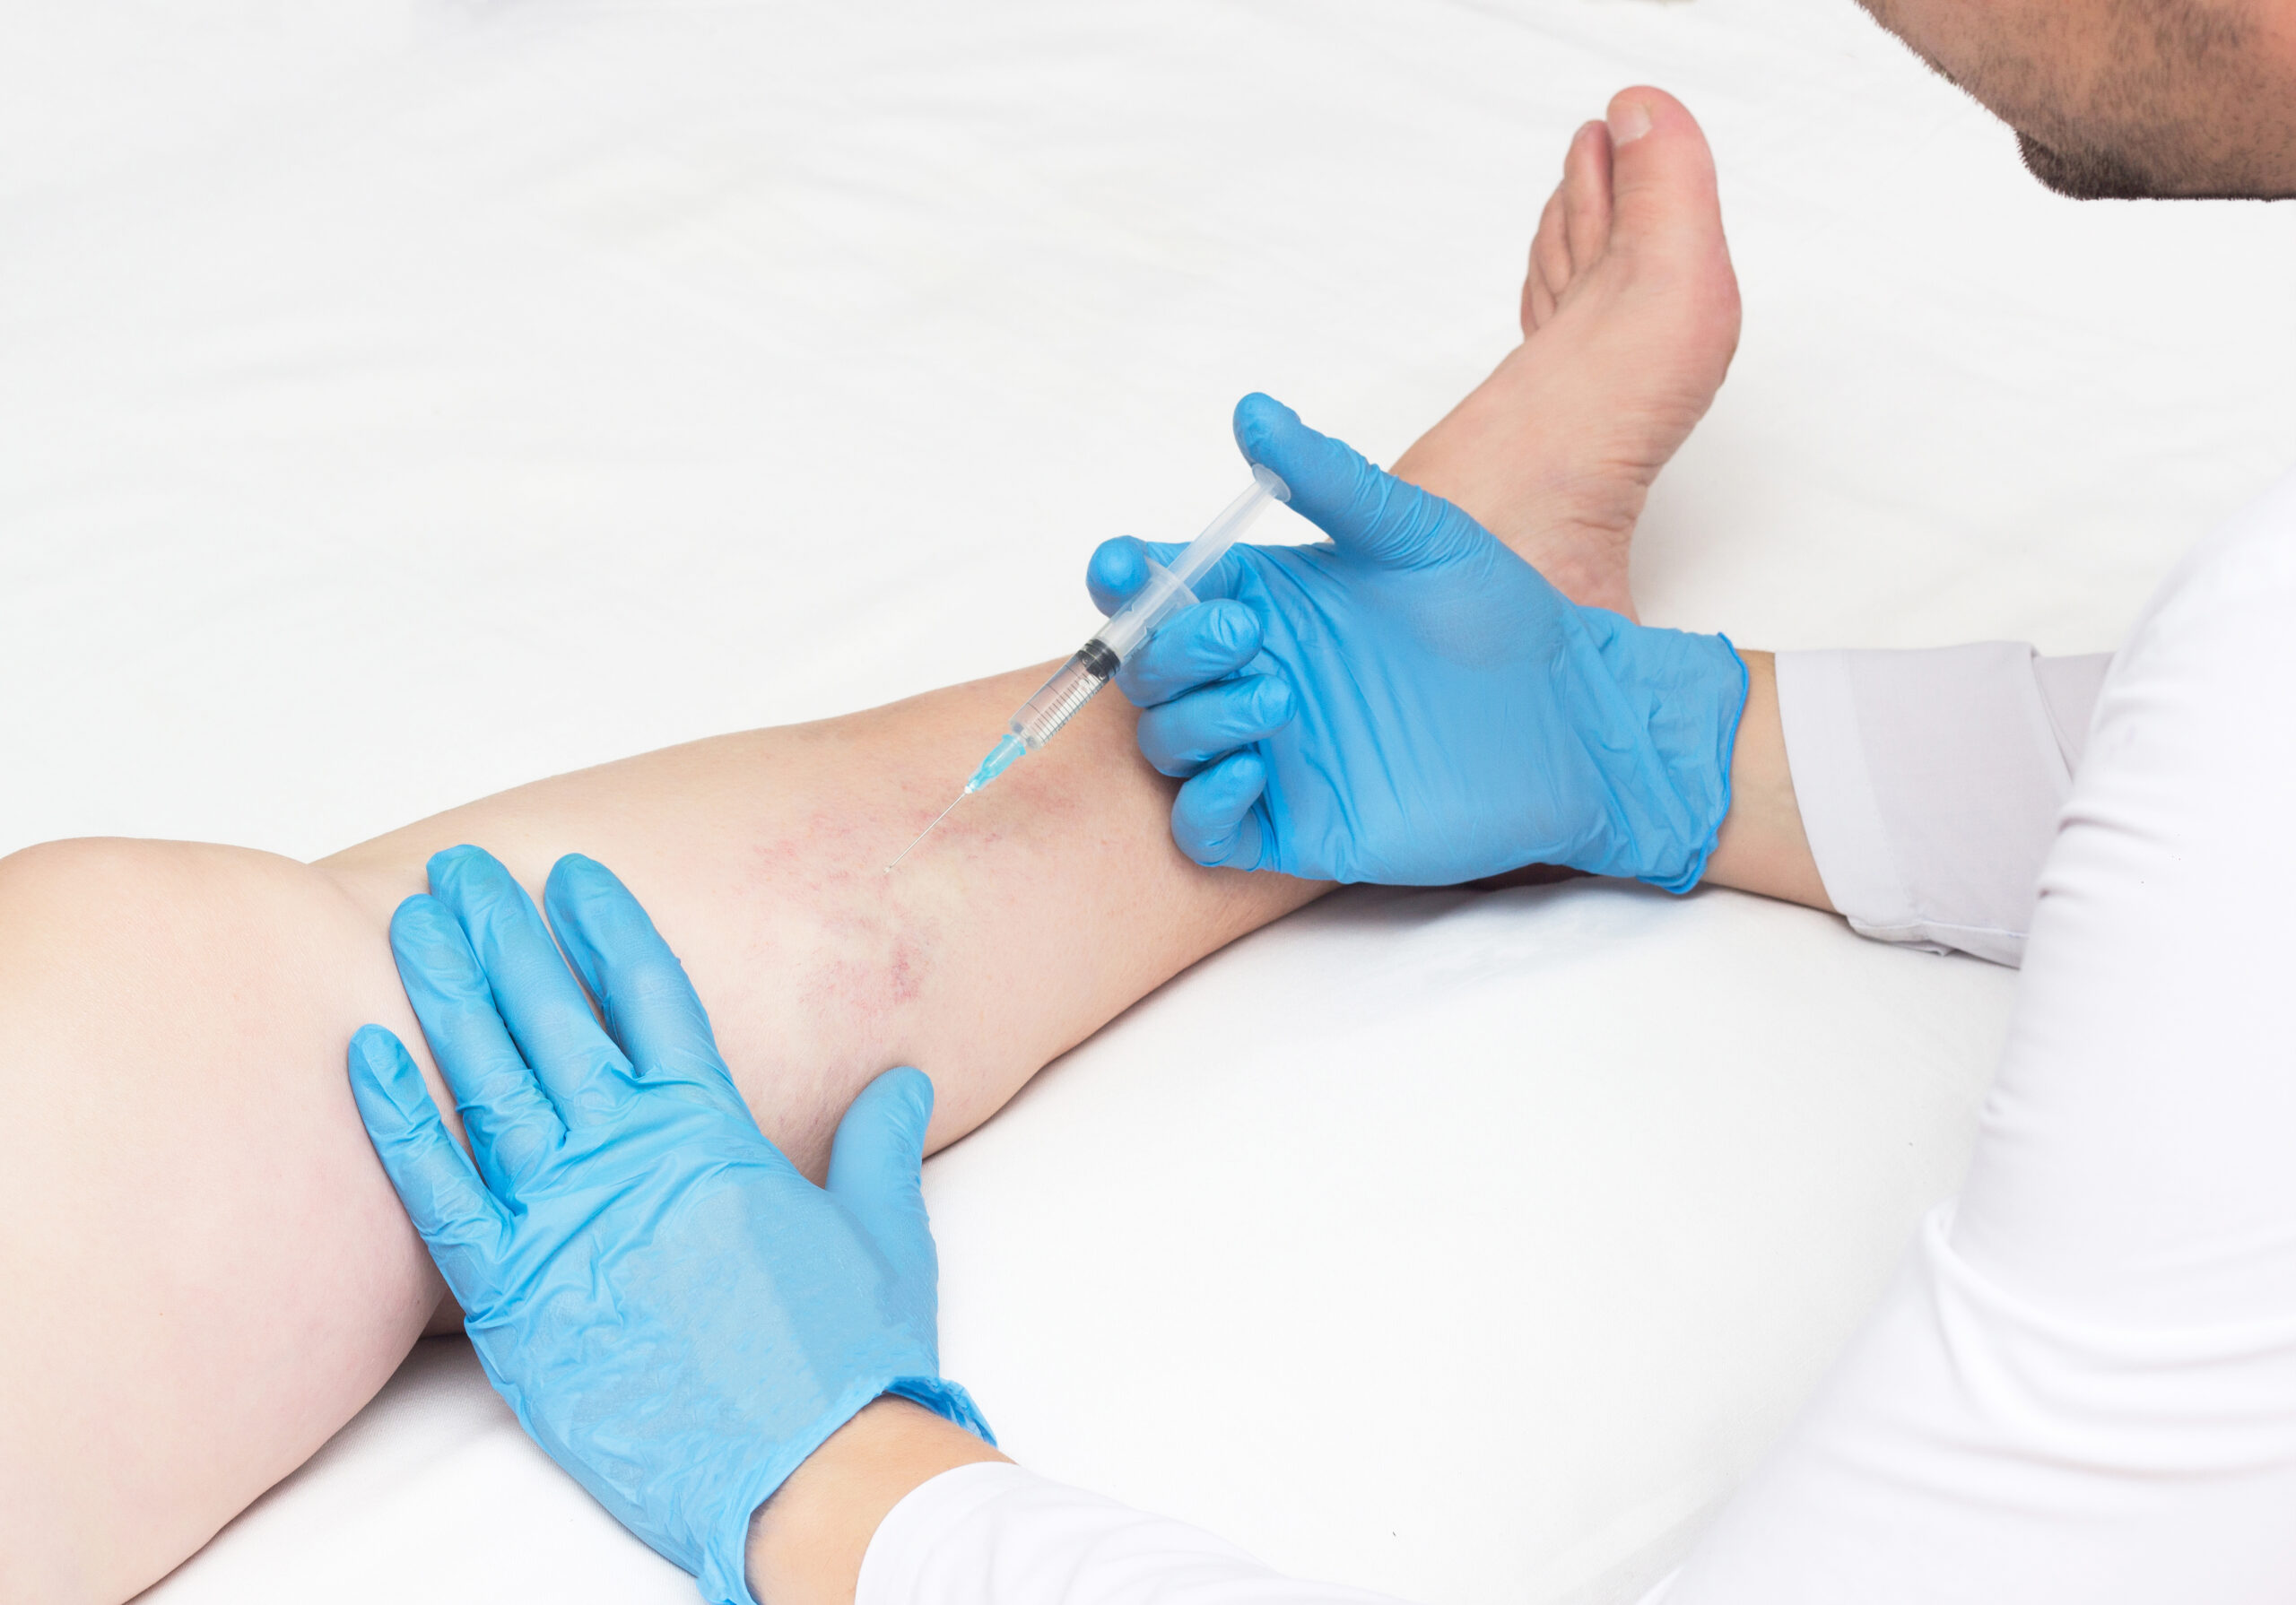 The Spider Vein and Varicose Vein Center in Houston, TX, has a comprehensive vein care process. This article describes the minimally invasive vein treatment process in detail.